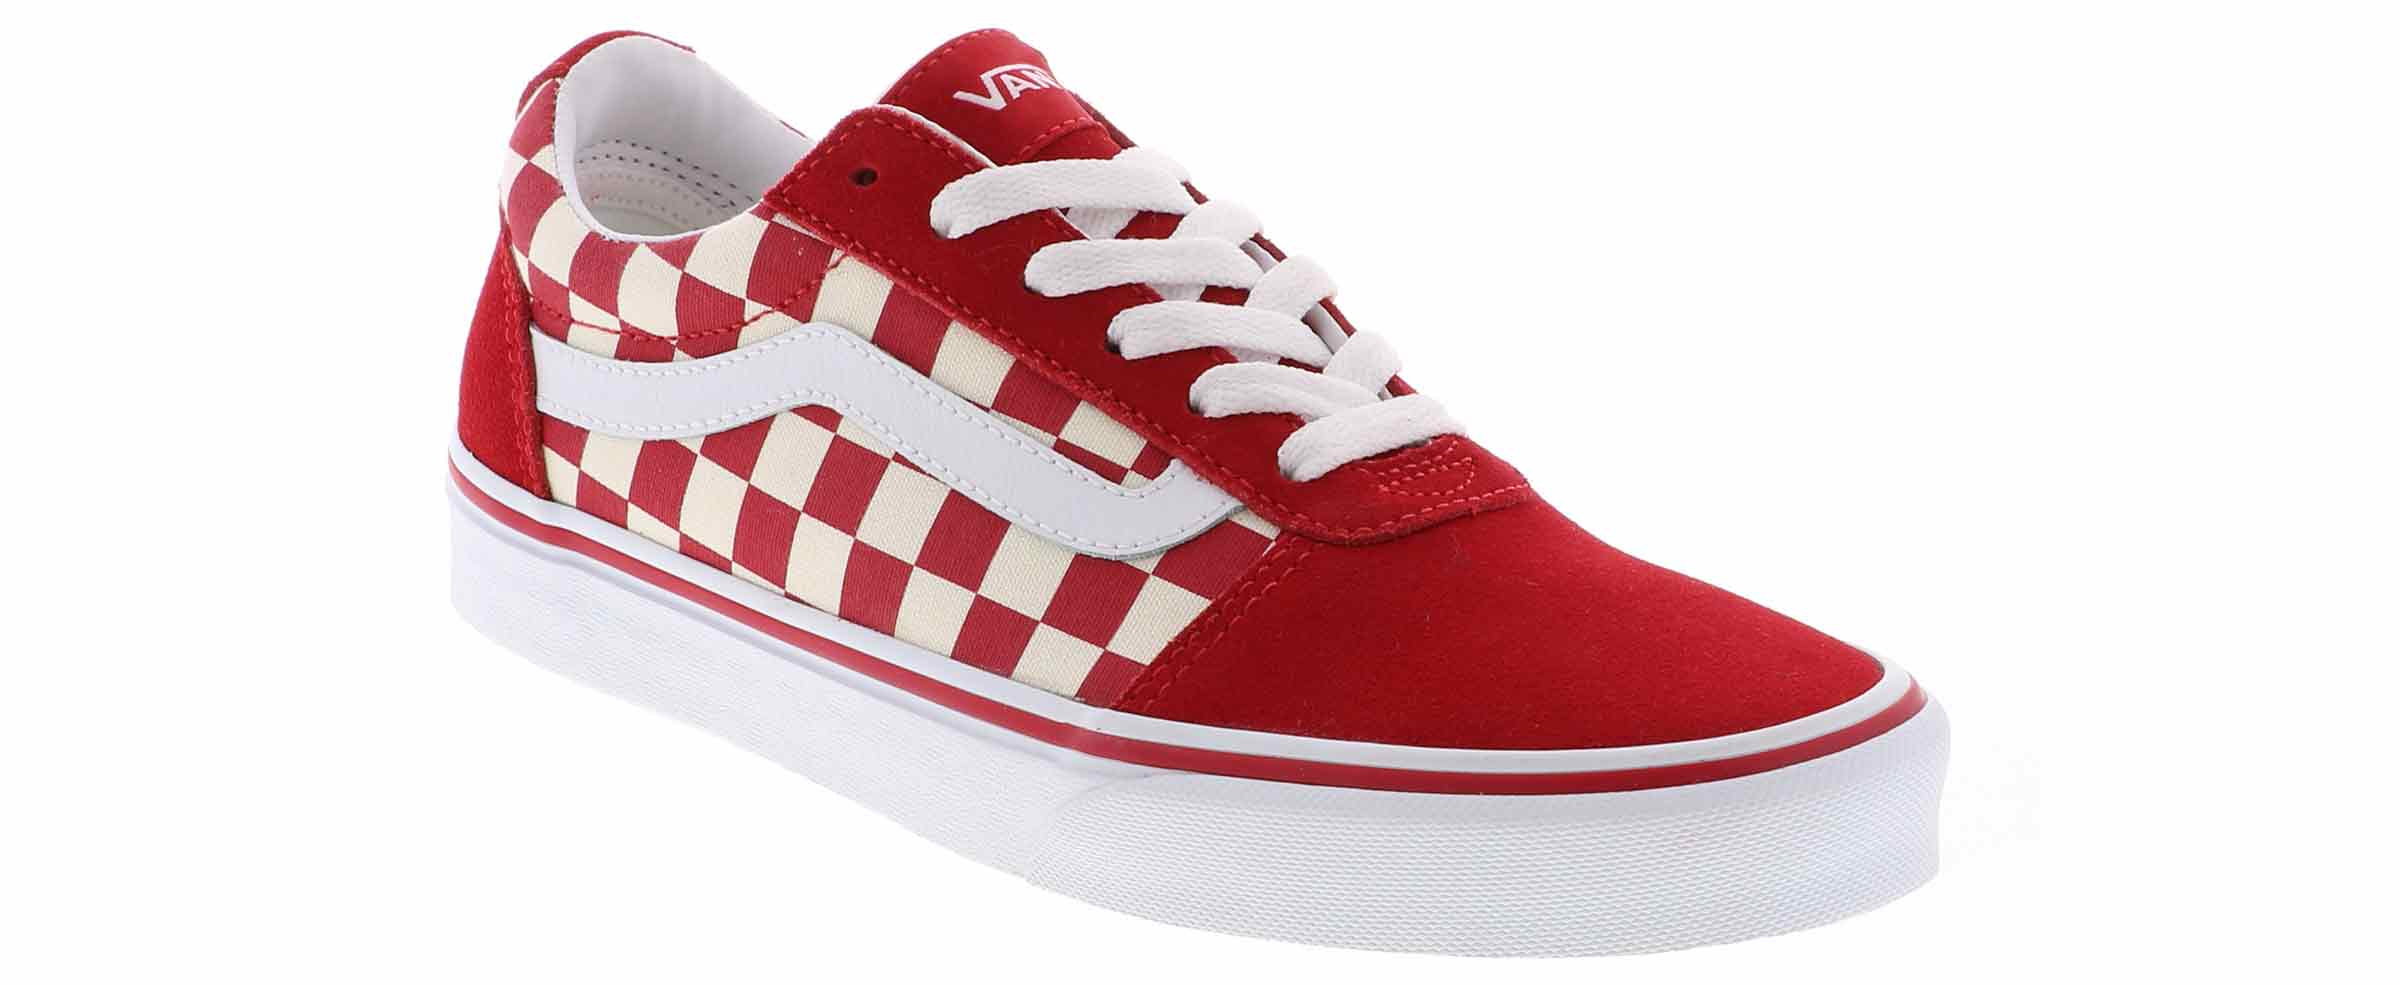 clear and distinctive wholesale online sneakers Women's Vans Ward Checkerboard